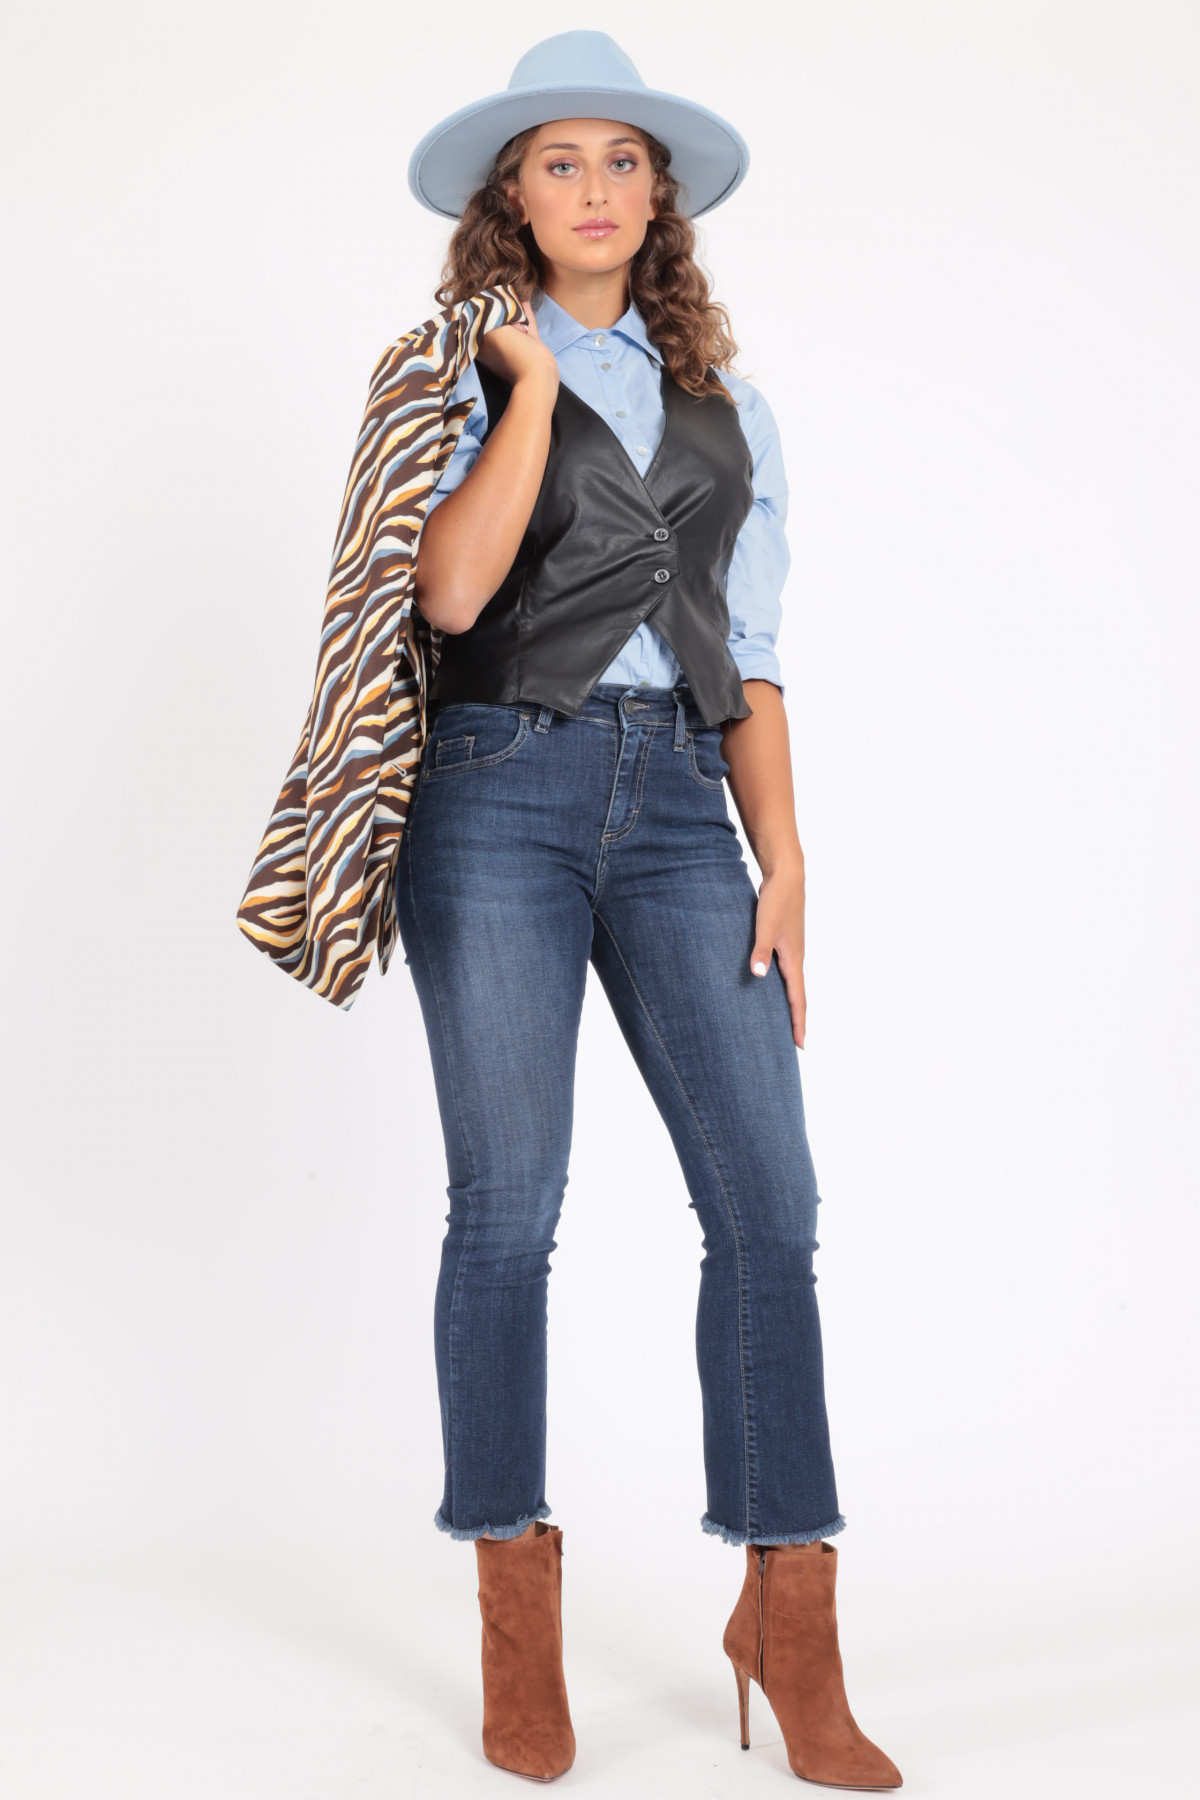 5 Flared Pockets Jeans with Fringed Bottom